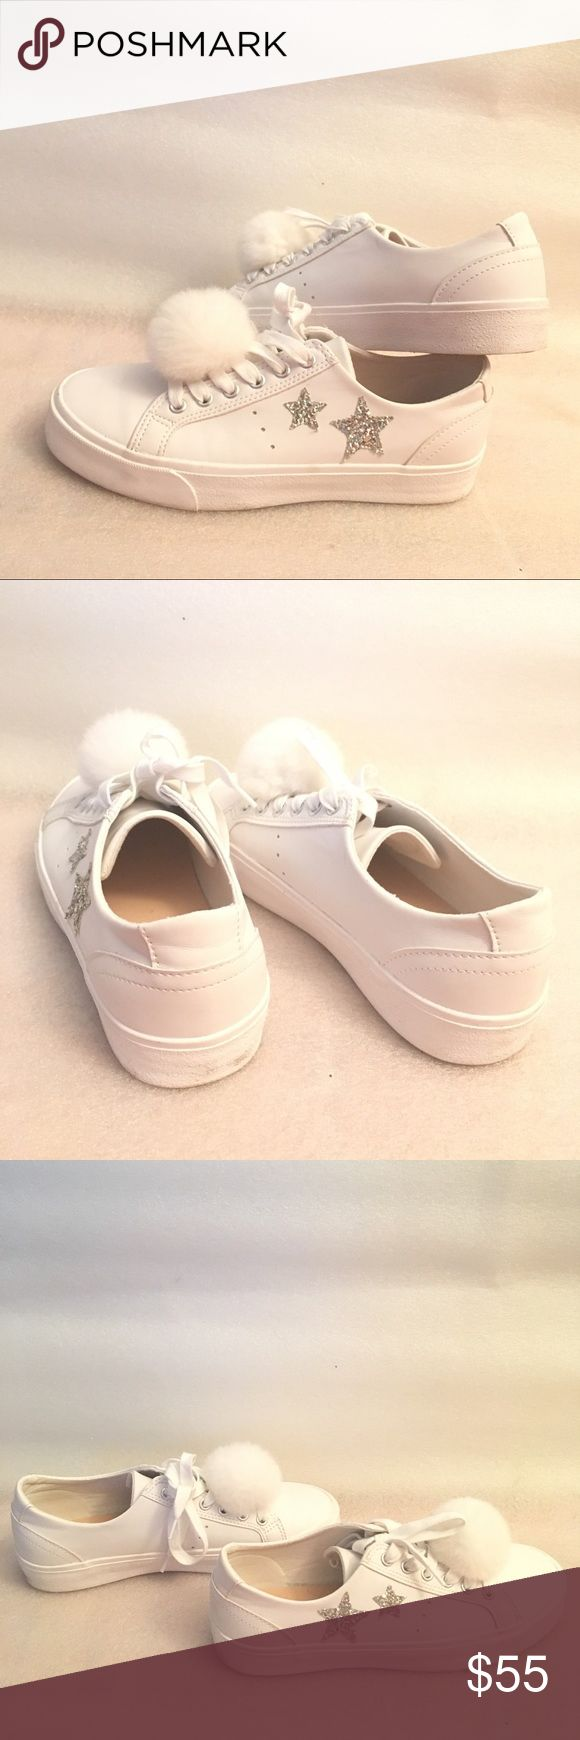 Pull and bear white stars fur ball sneakers Used gently maybe 2/3 times. The fur ball is removable. ASOS Shoes Sneakers